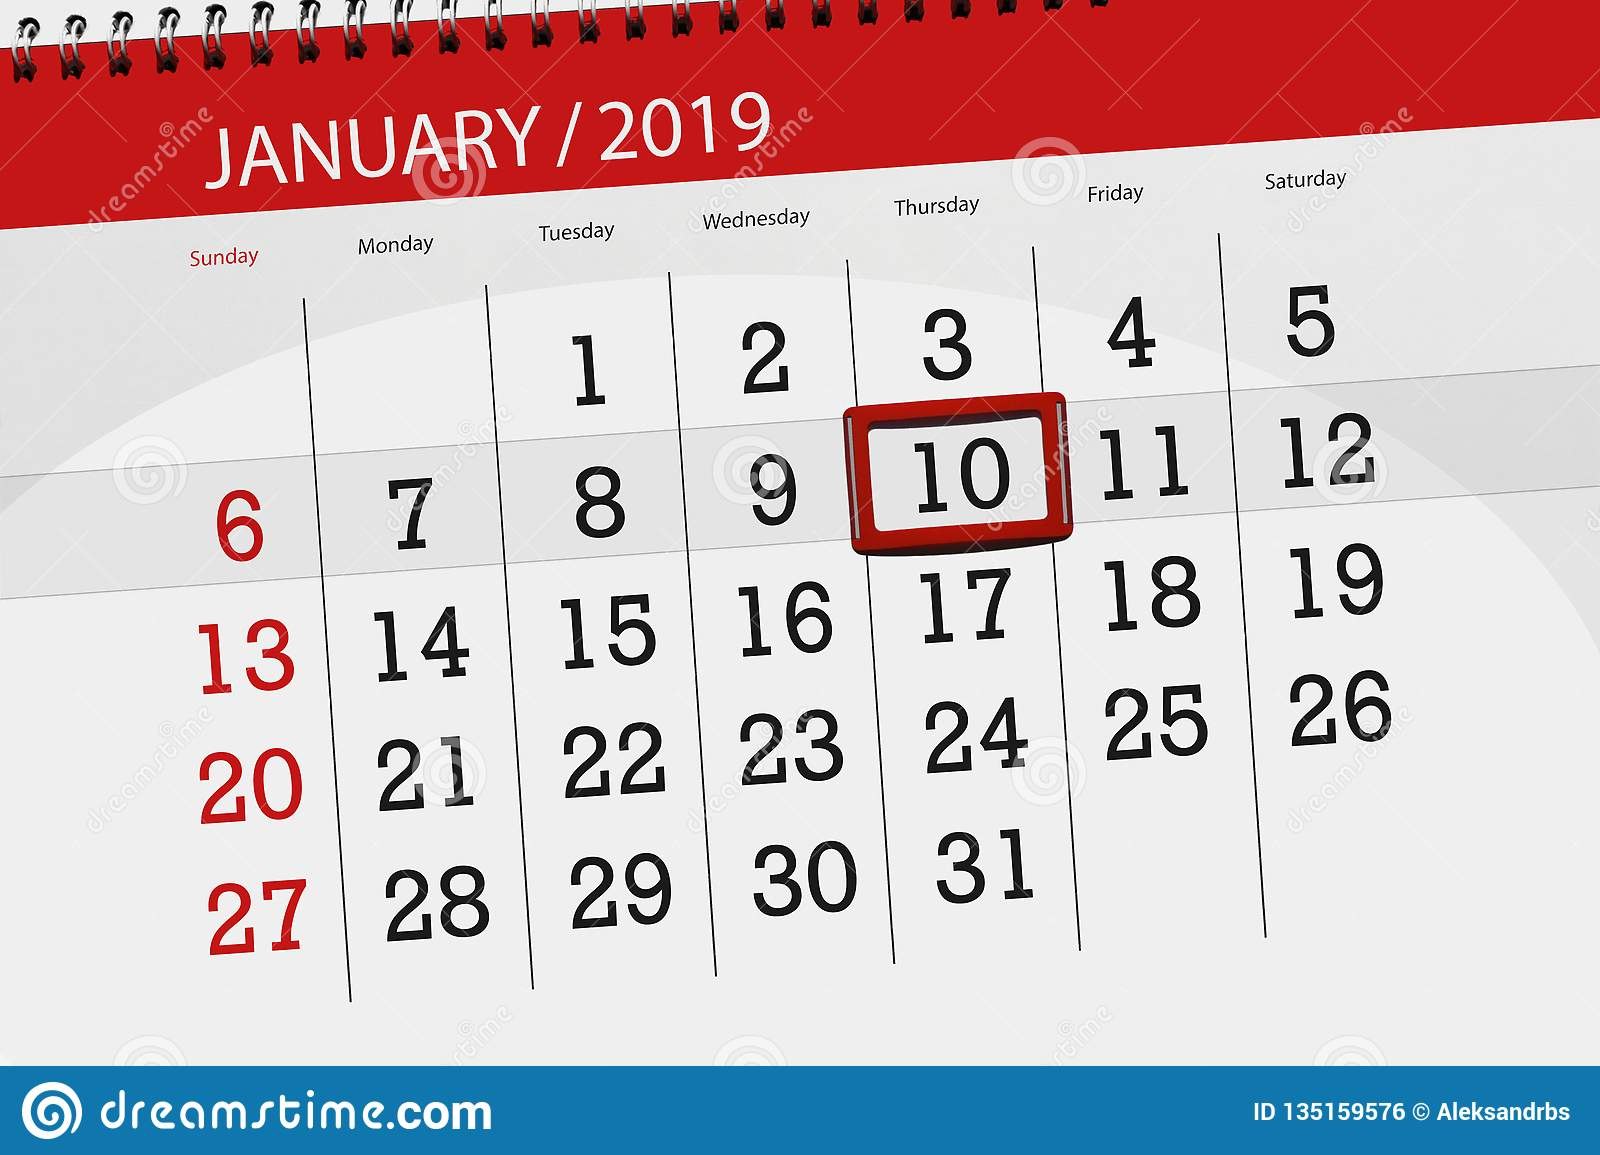 Calendar planner for the month january 2019, deadline day, 10, thursday